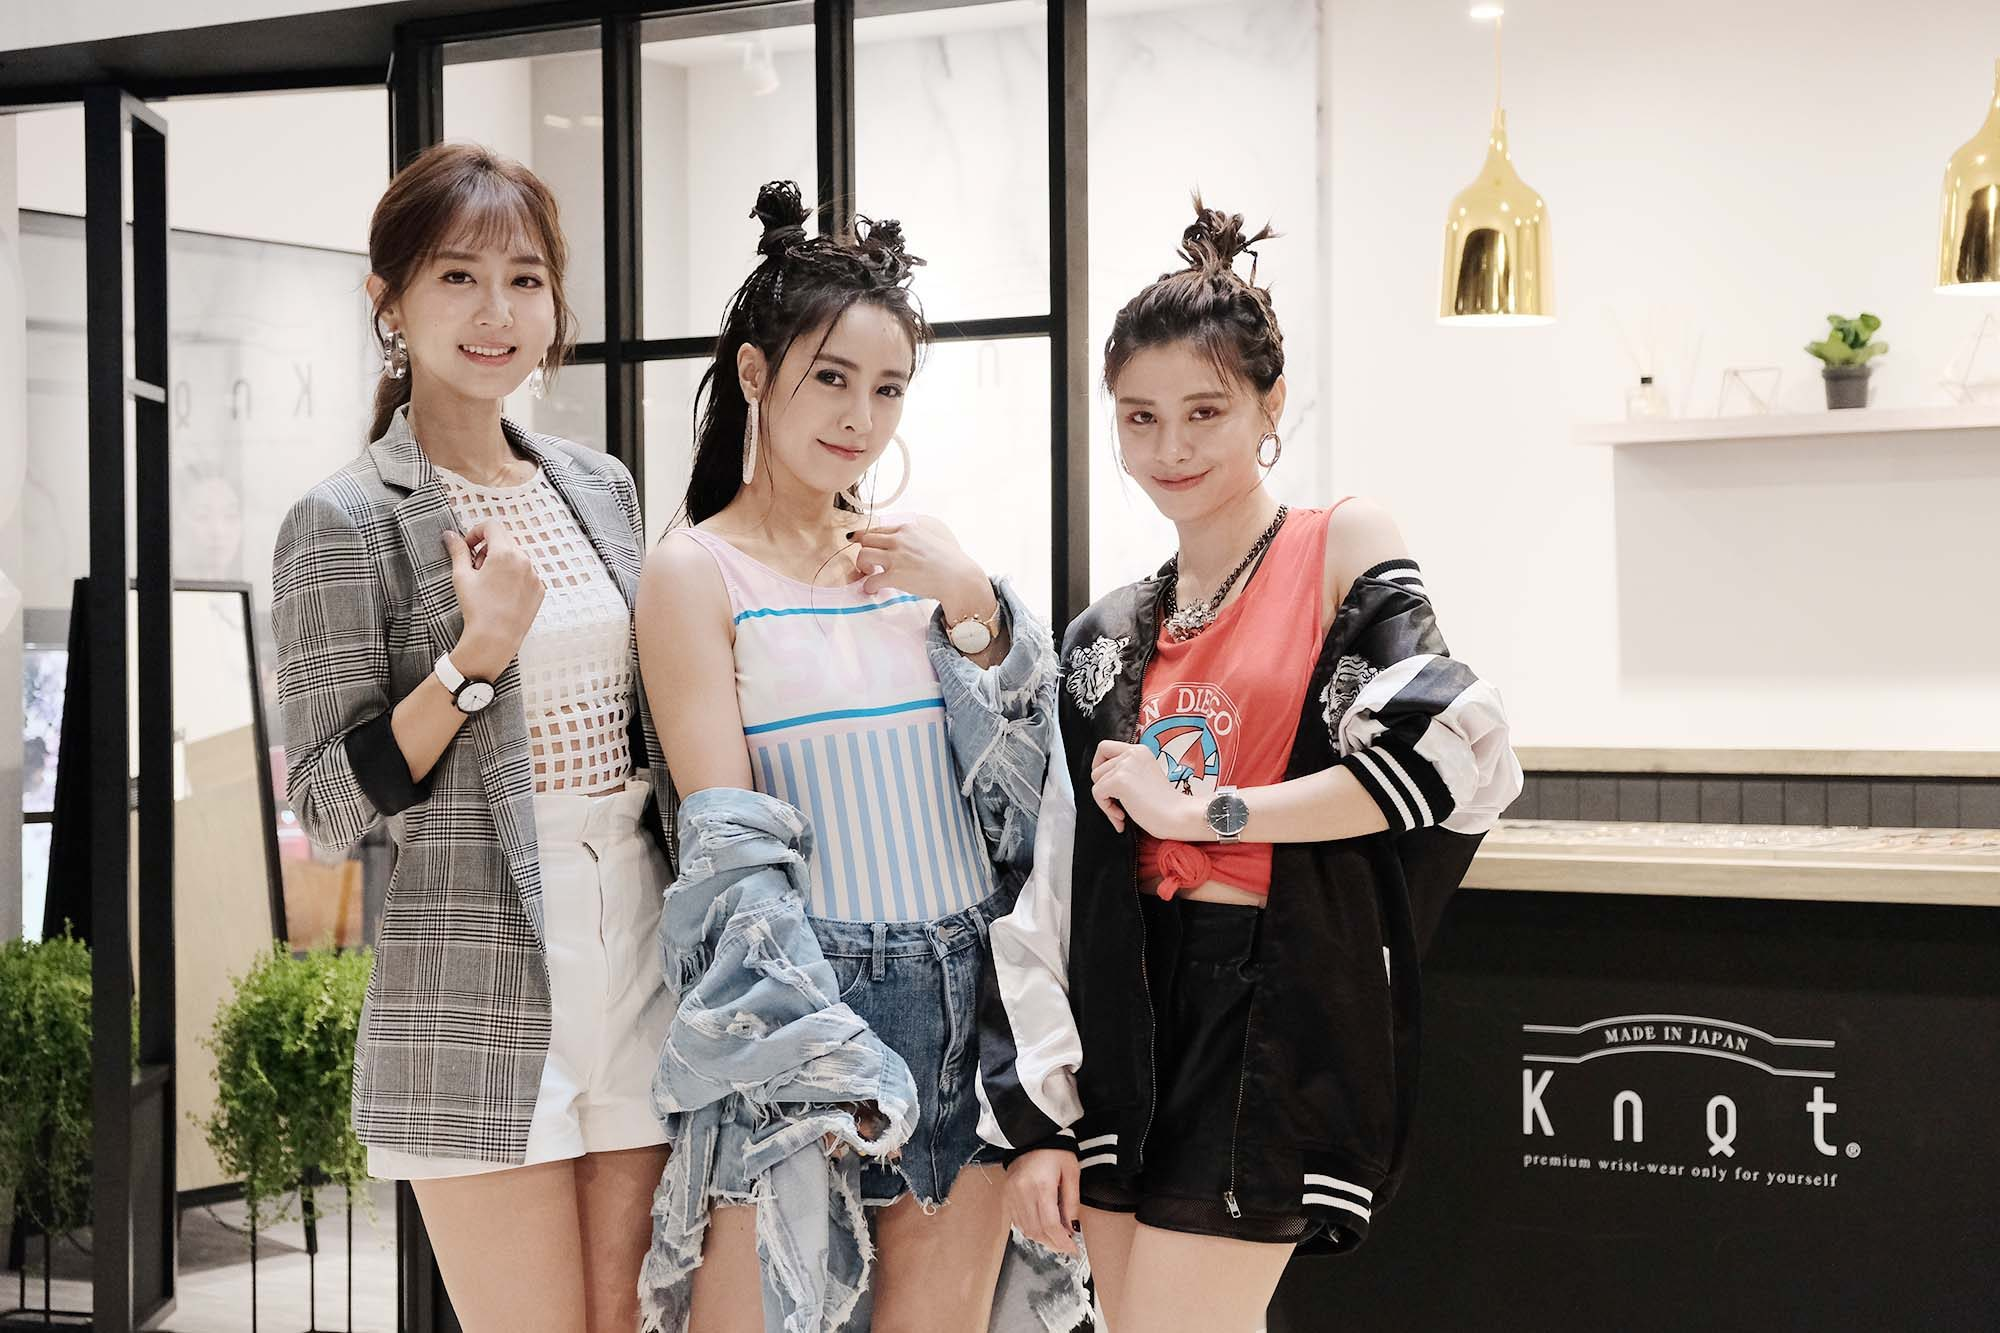 knot-qsquare-pop-up-store-08